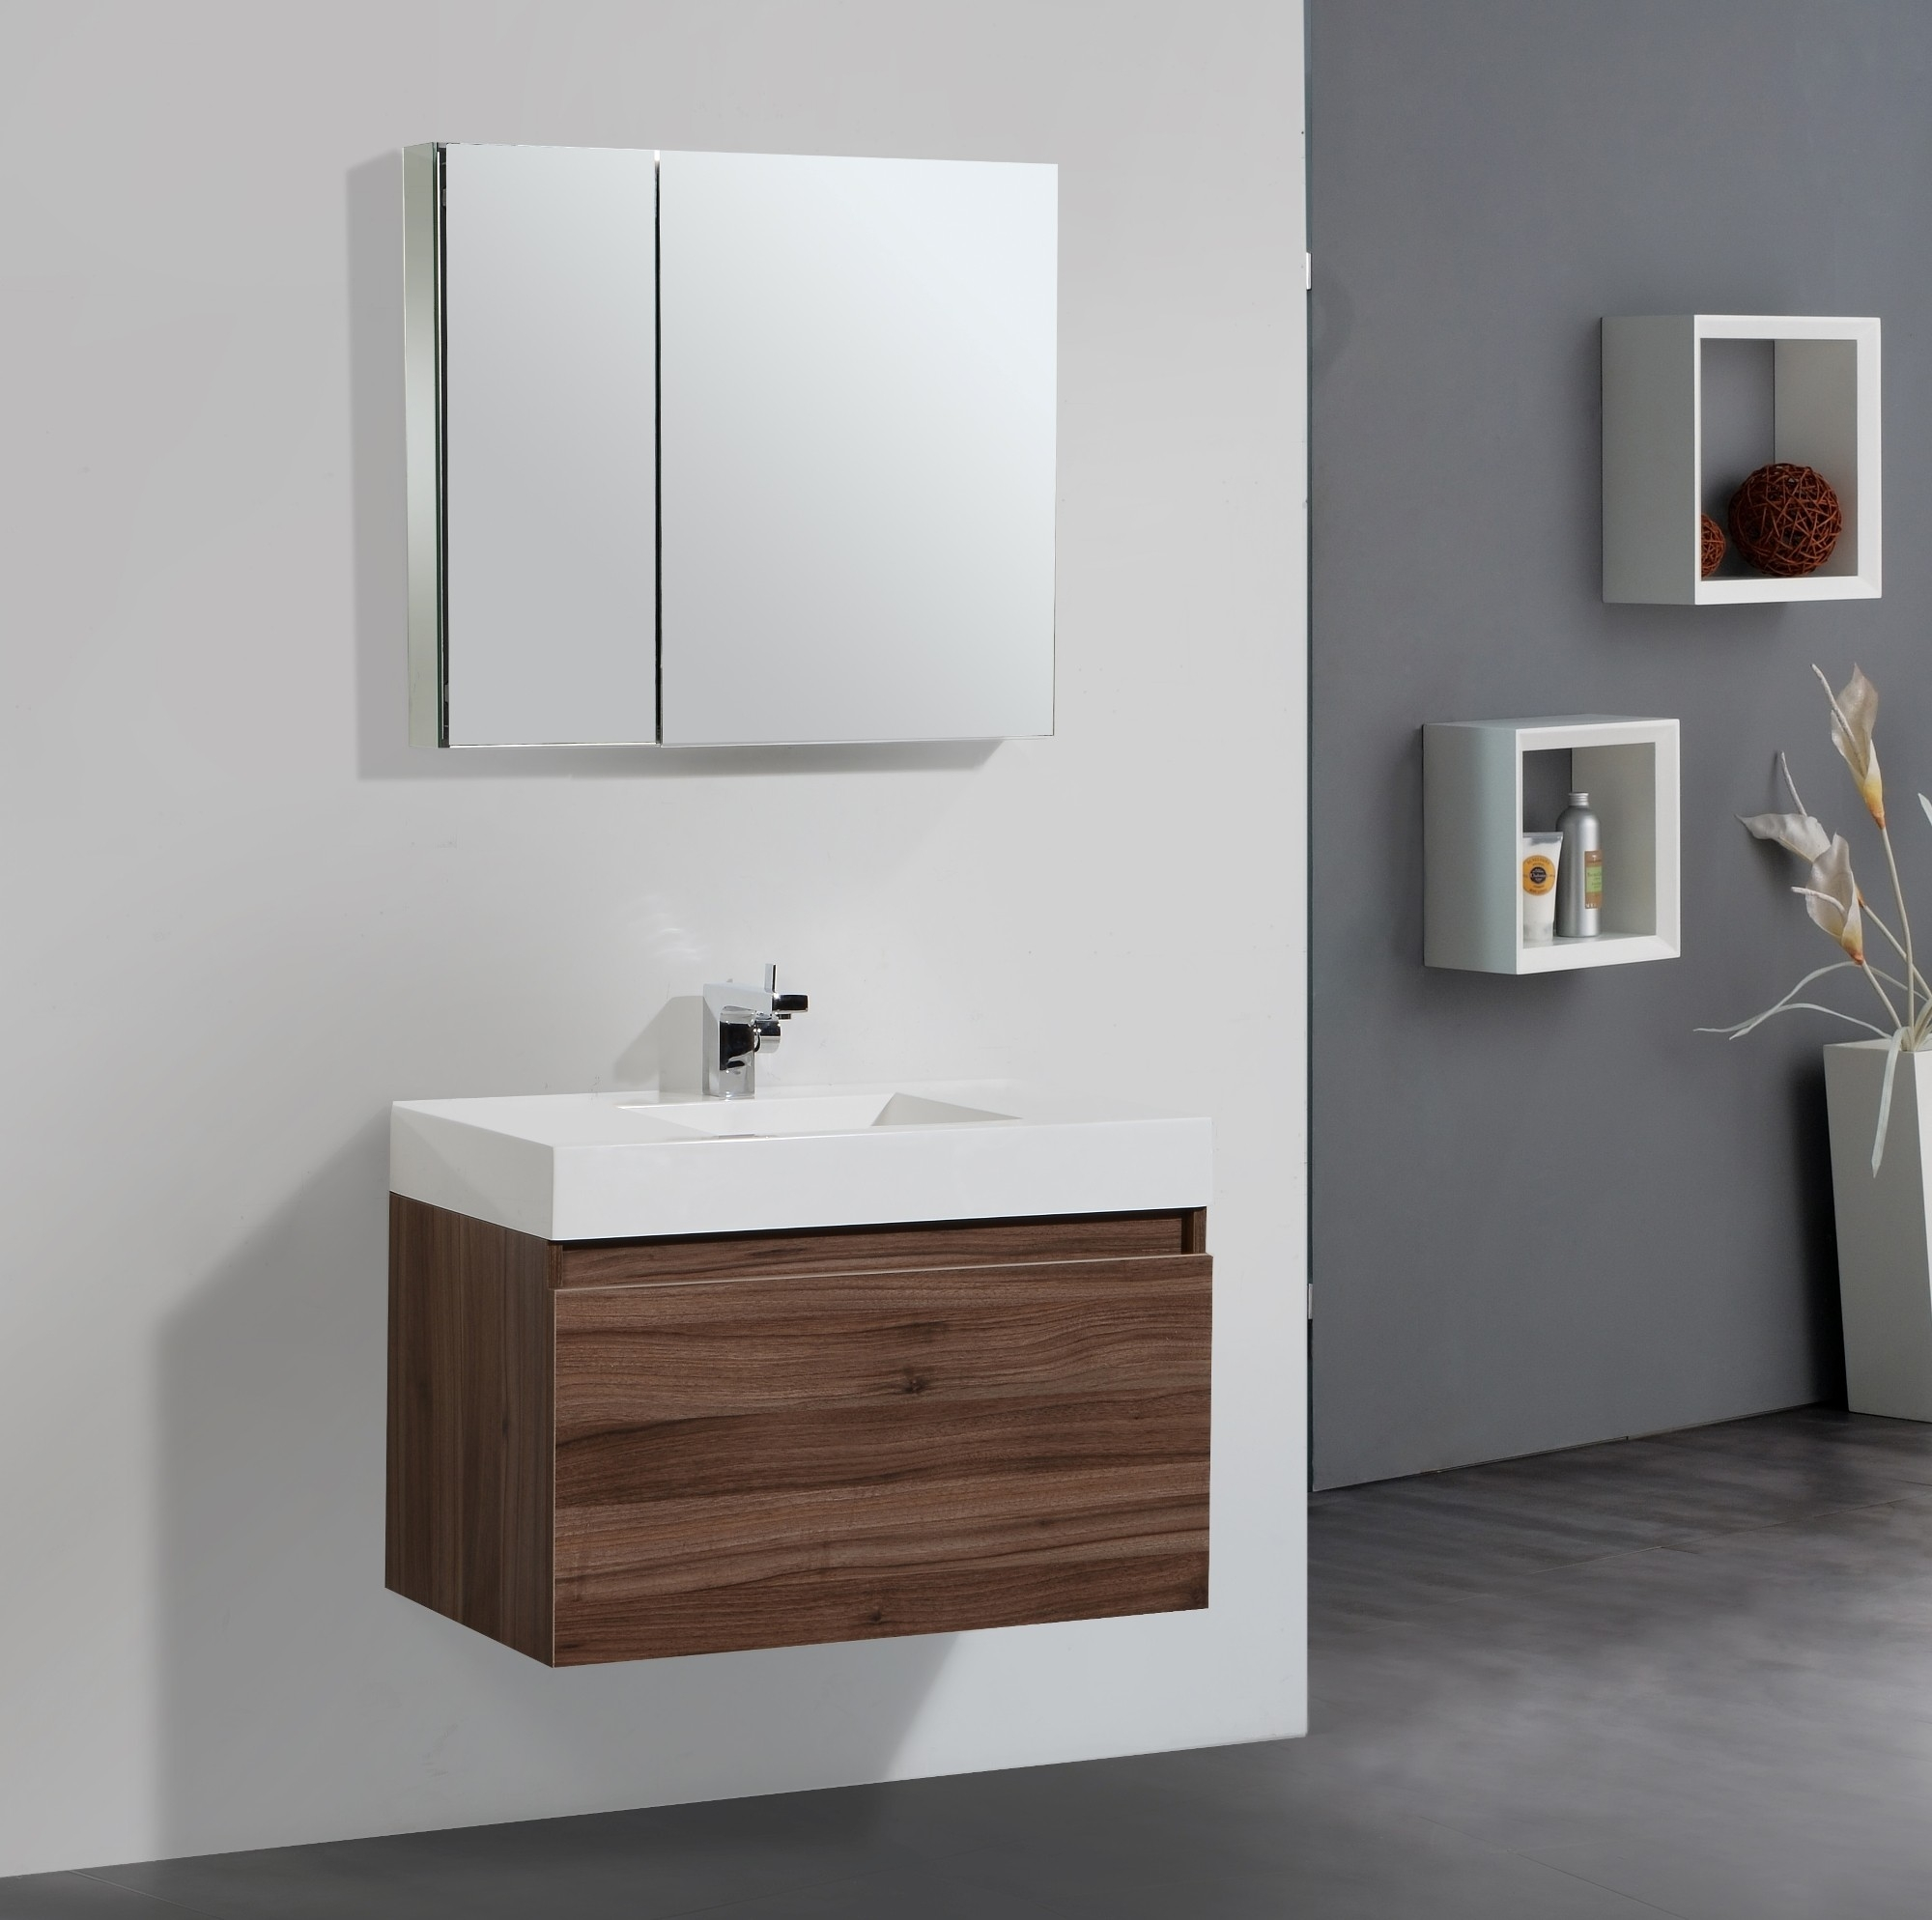 Bathroom Sinks For Cabinets